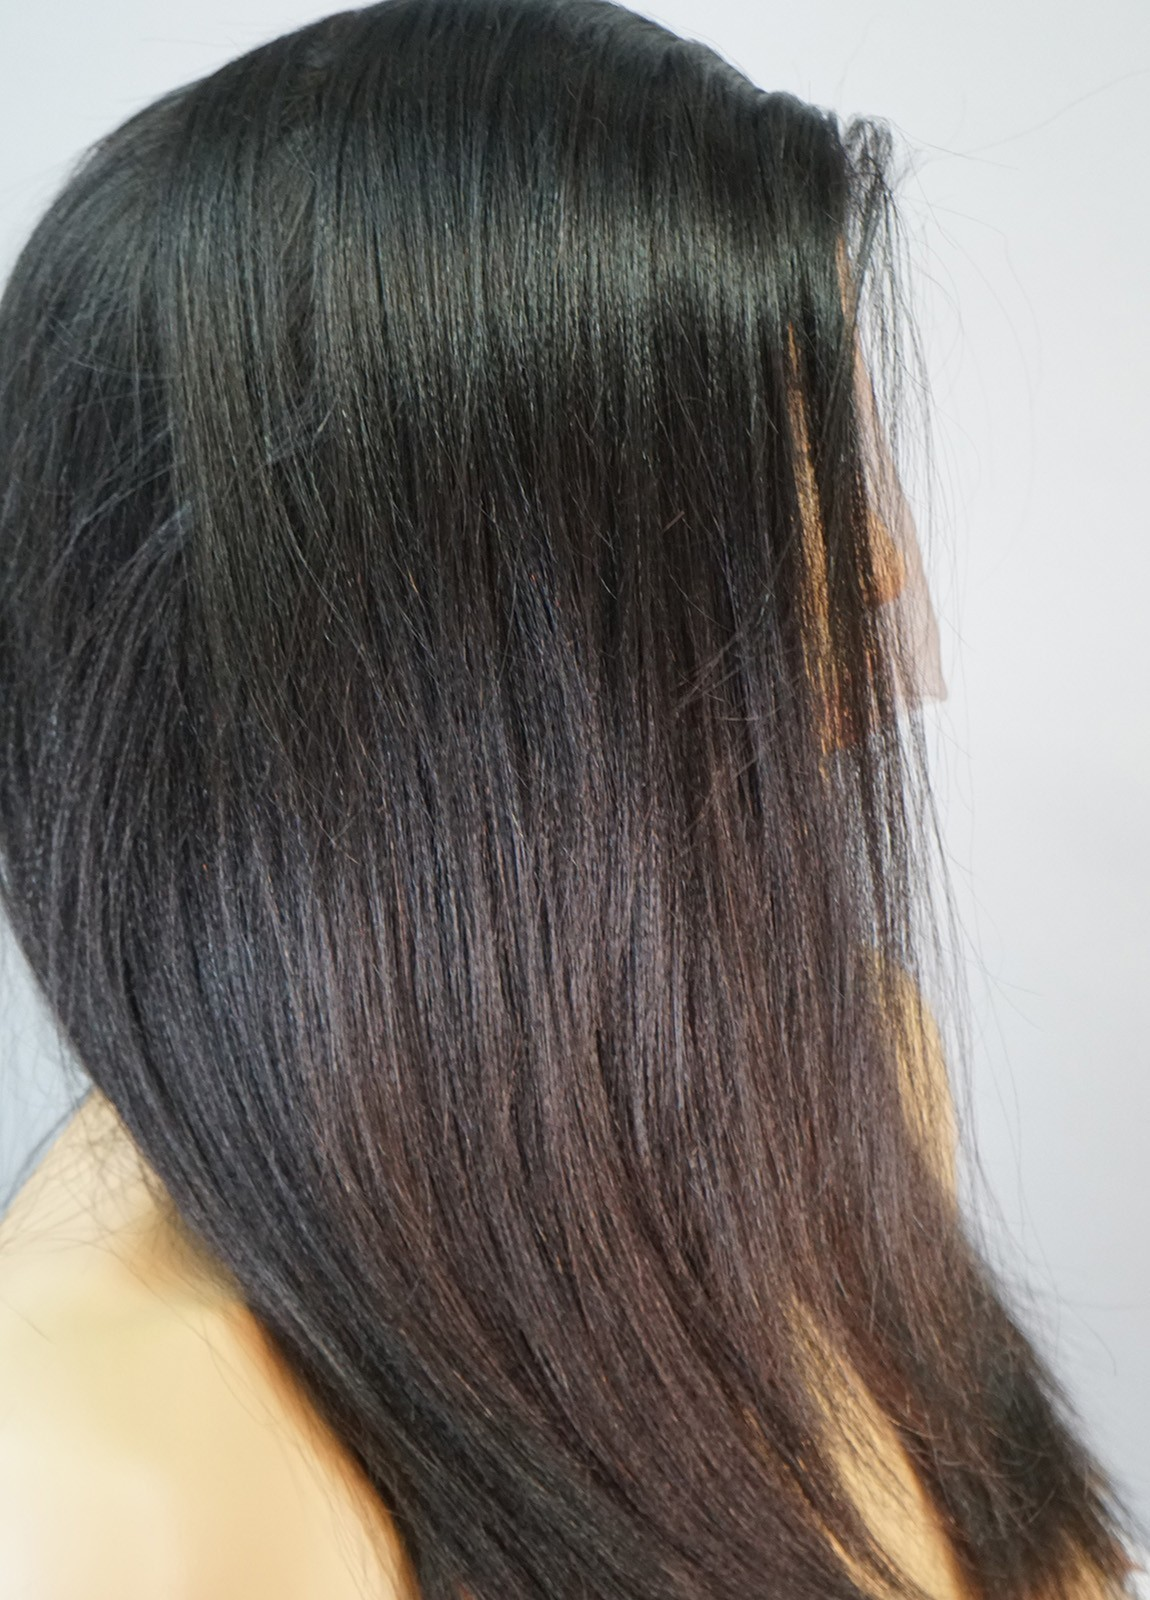 Wigs for African American Cancer Patients